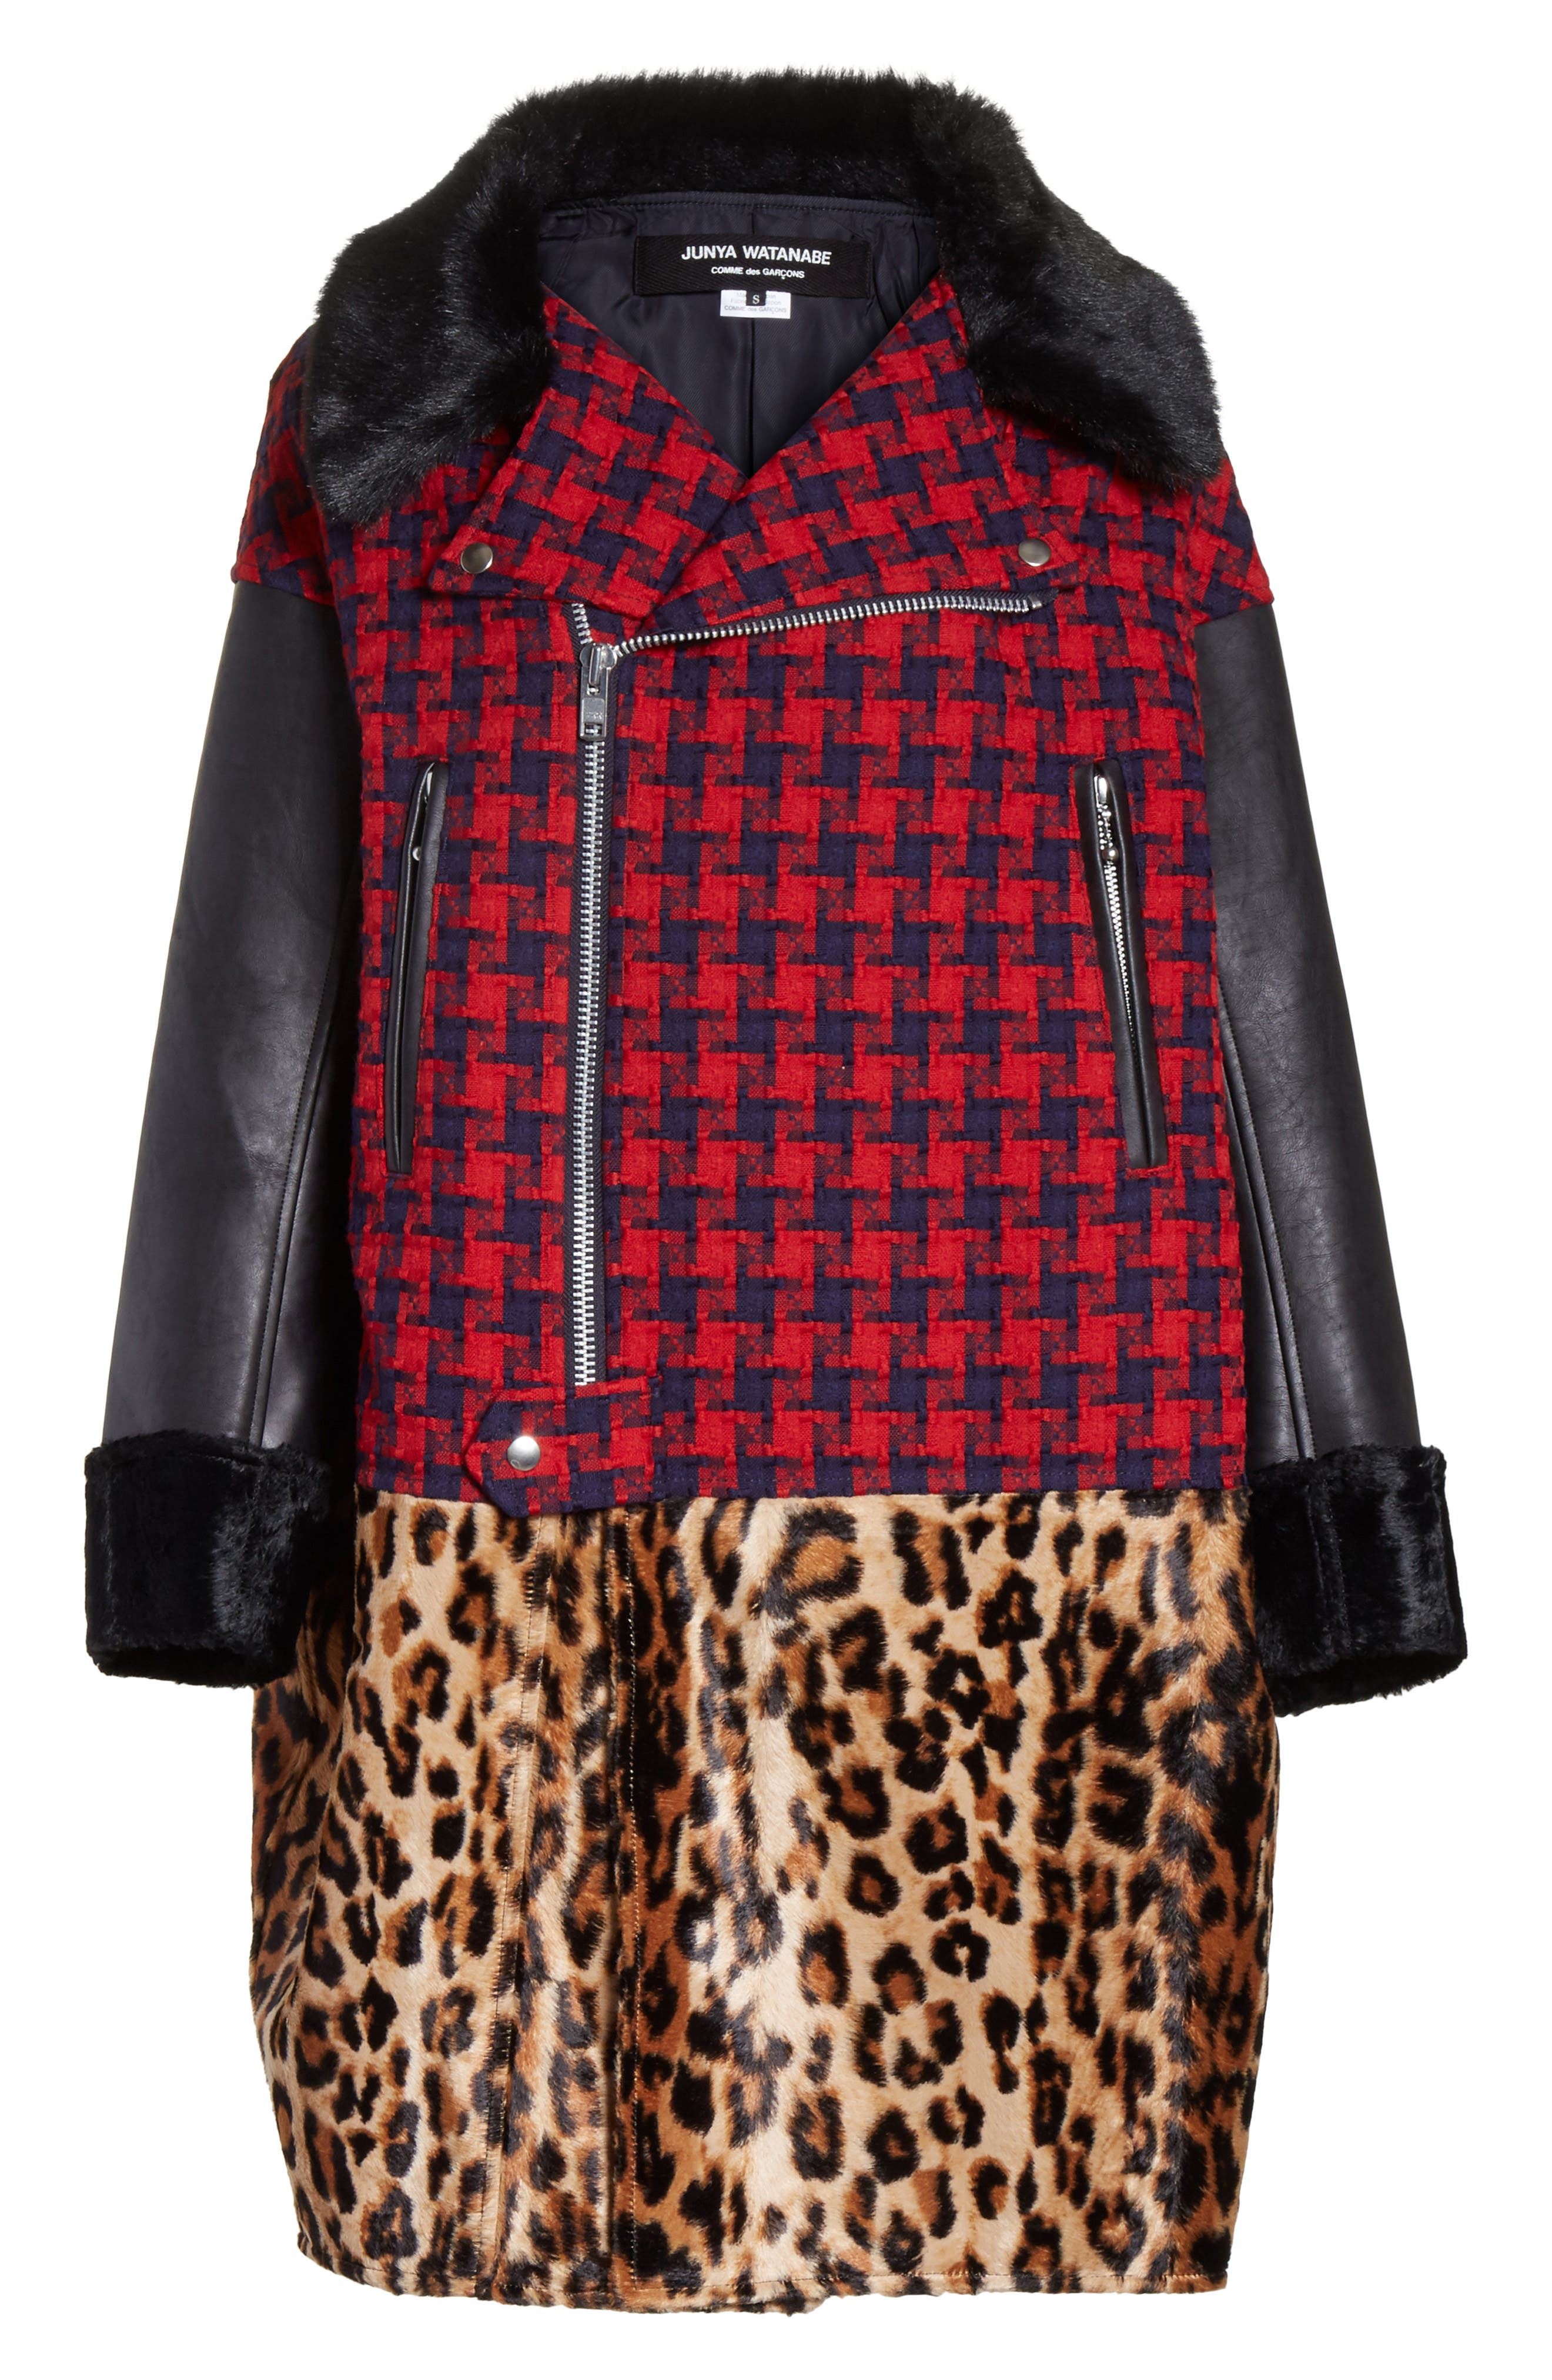 Buffalo Check Moto Jacket with Faux Fur Trim,                             Alternate thumbnail 6, color,                             Red/Nvy X Bge/Brn